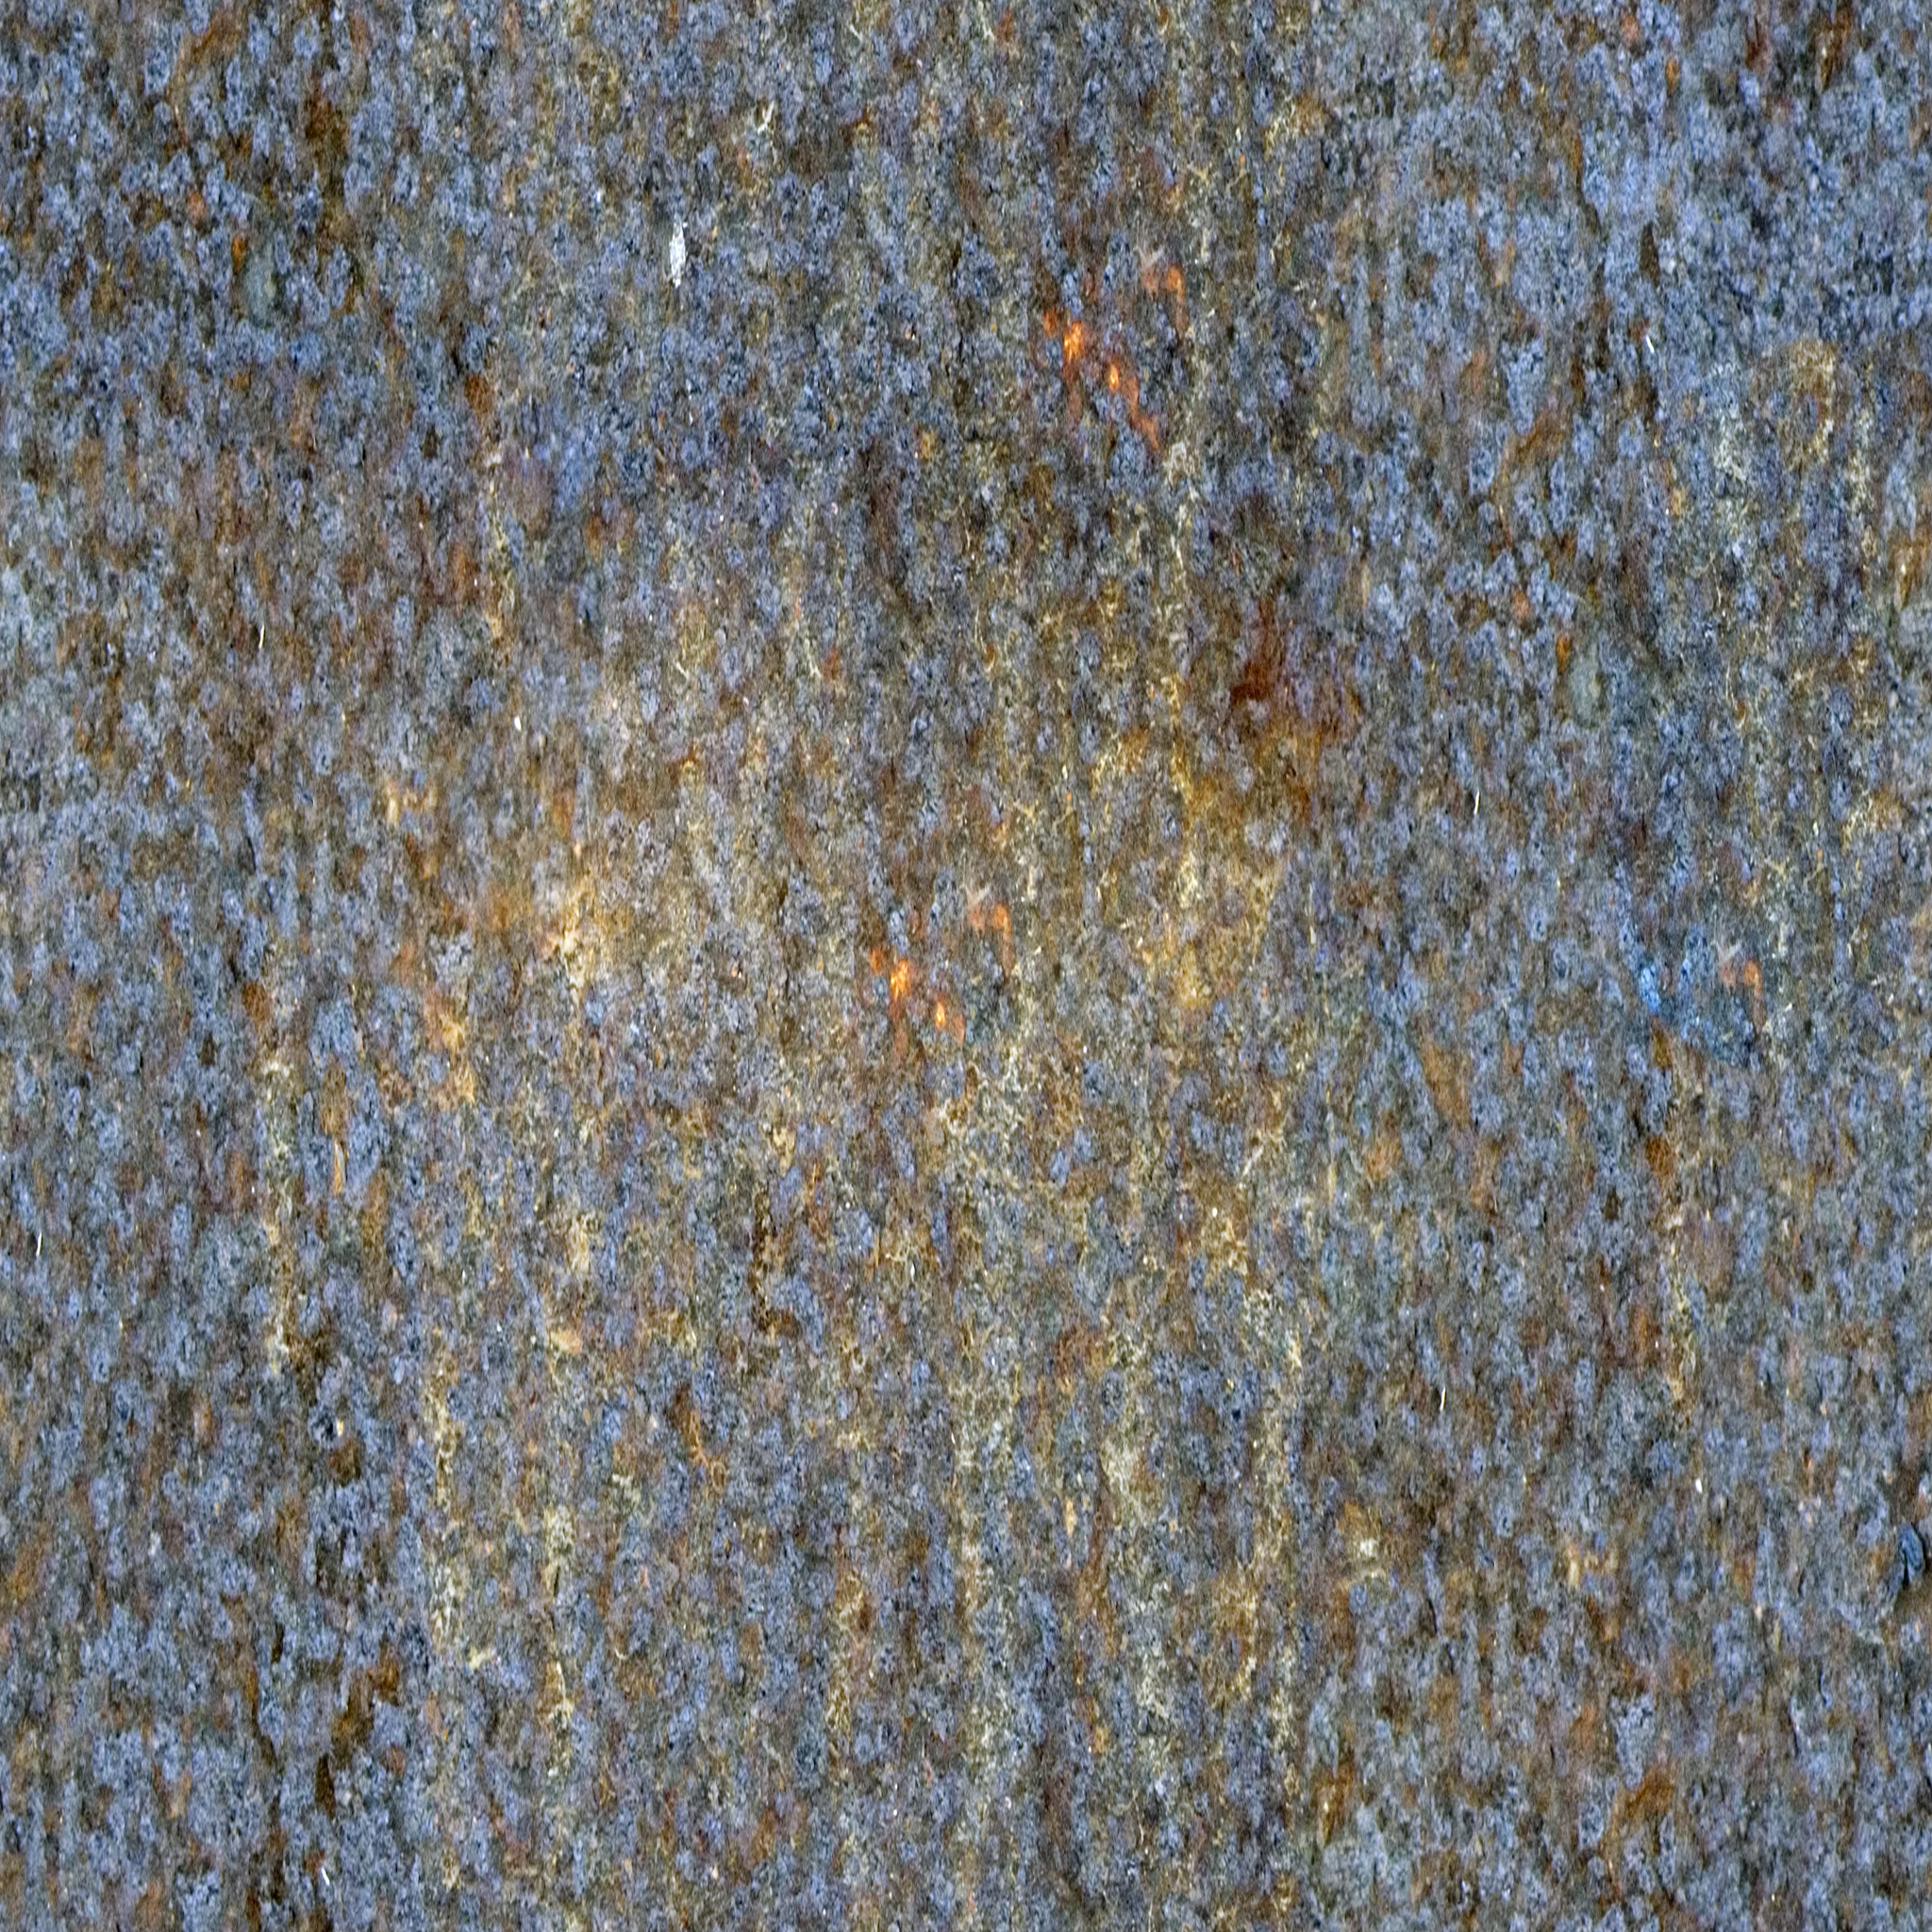 Blue Scratched Rust.jpg